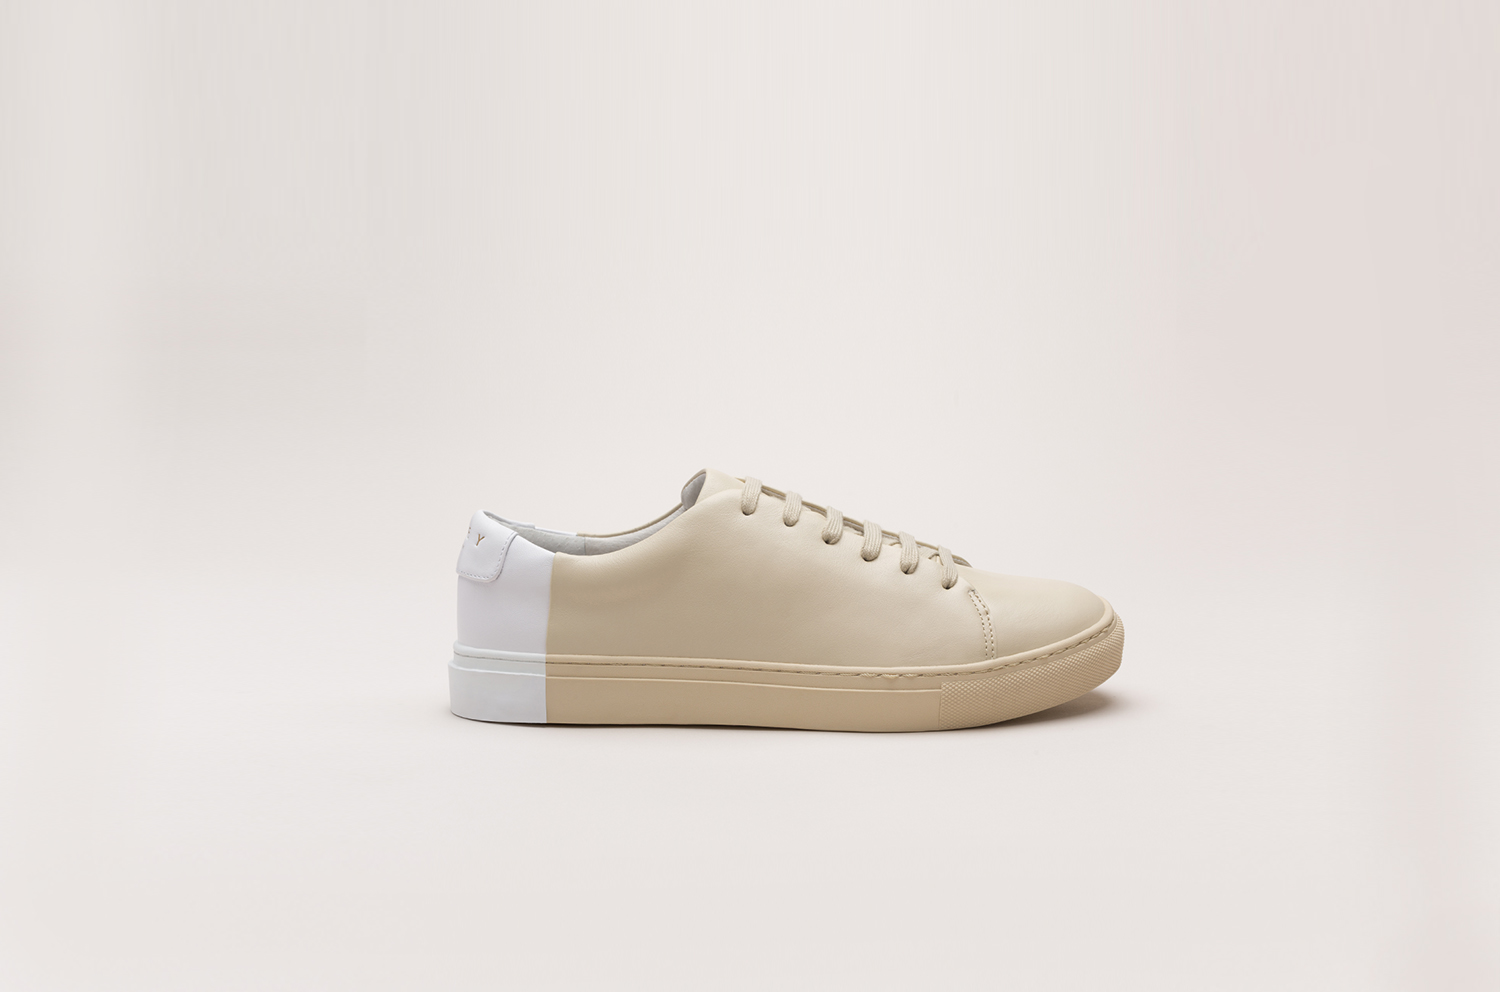 They New York sneakers